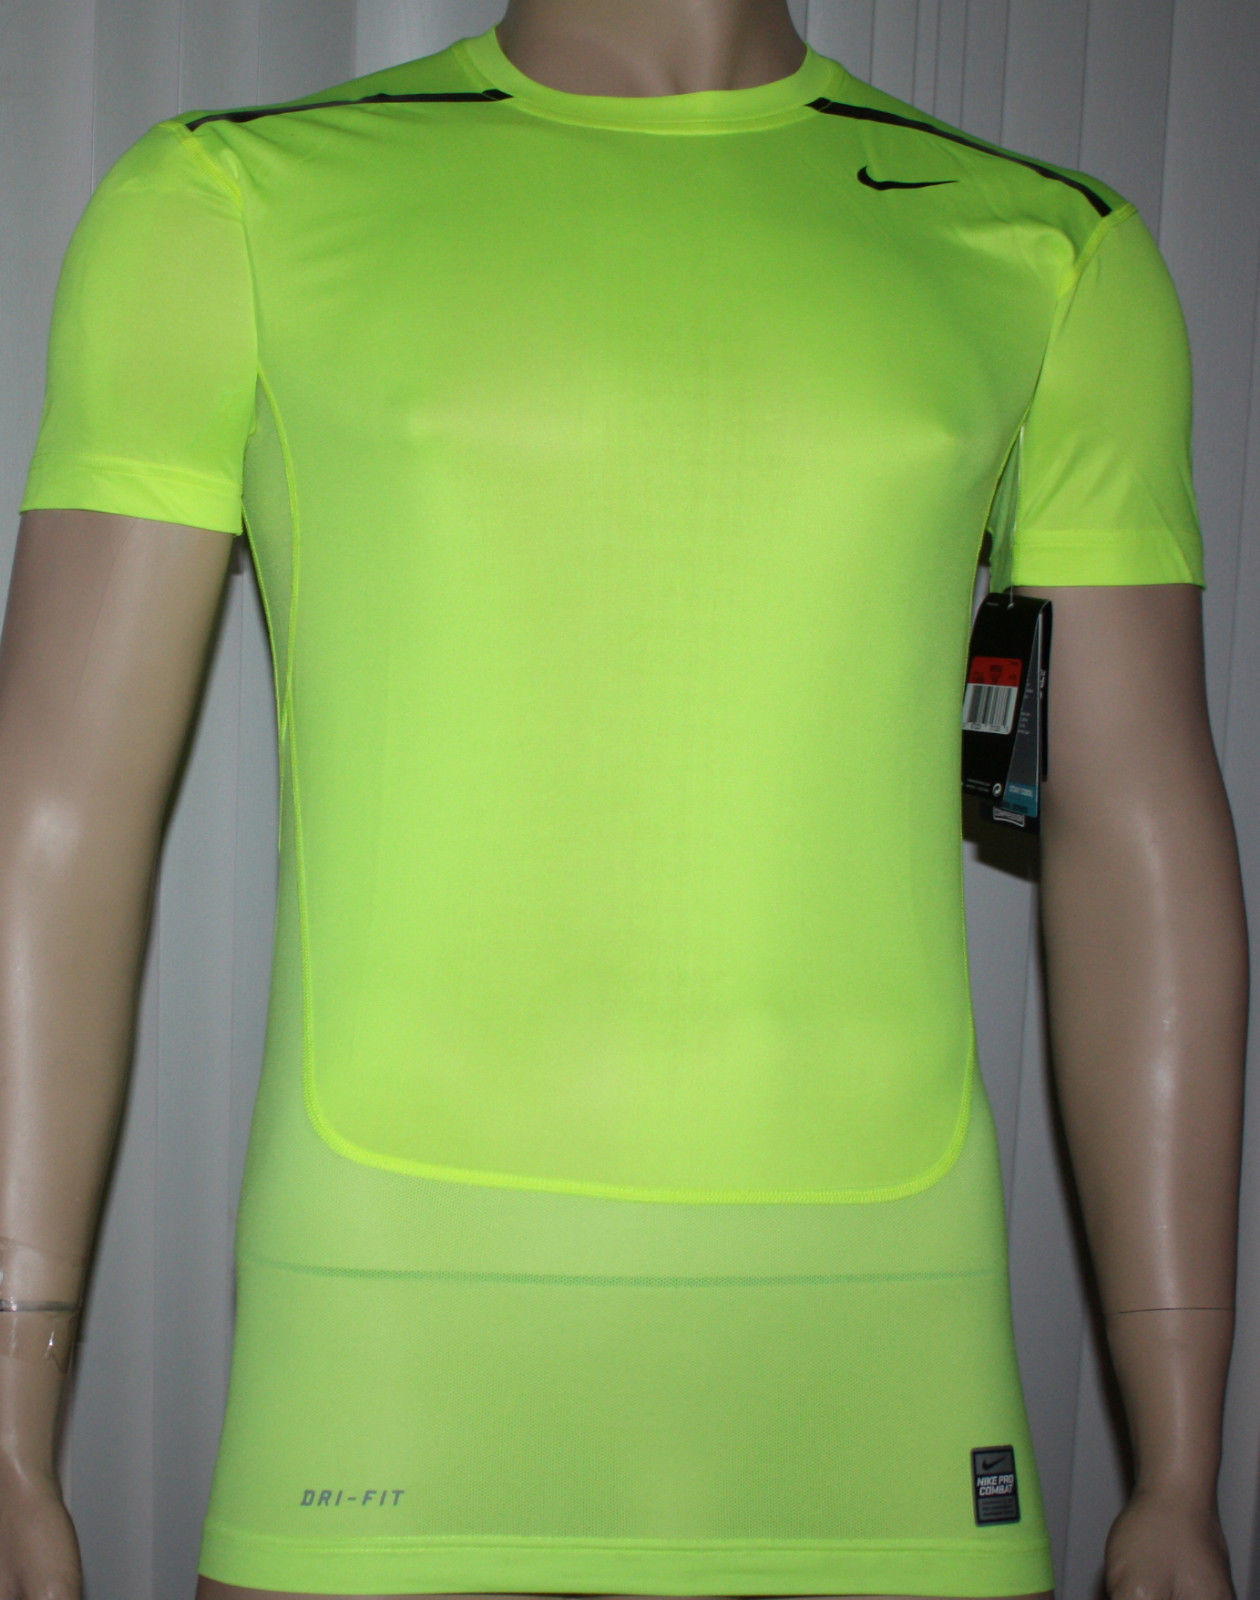 Nike Pro Combat Men's Dri-Fit HyperCool Compression Shirt Volt/Obsidian (Several Sizes) 09871